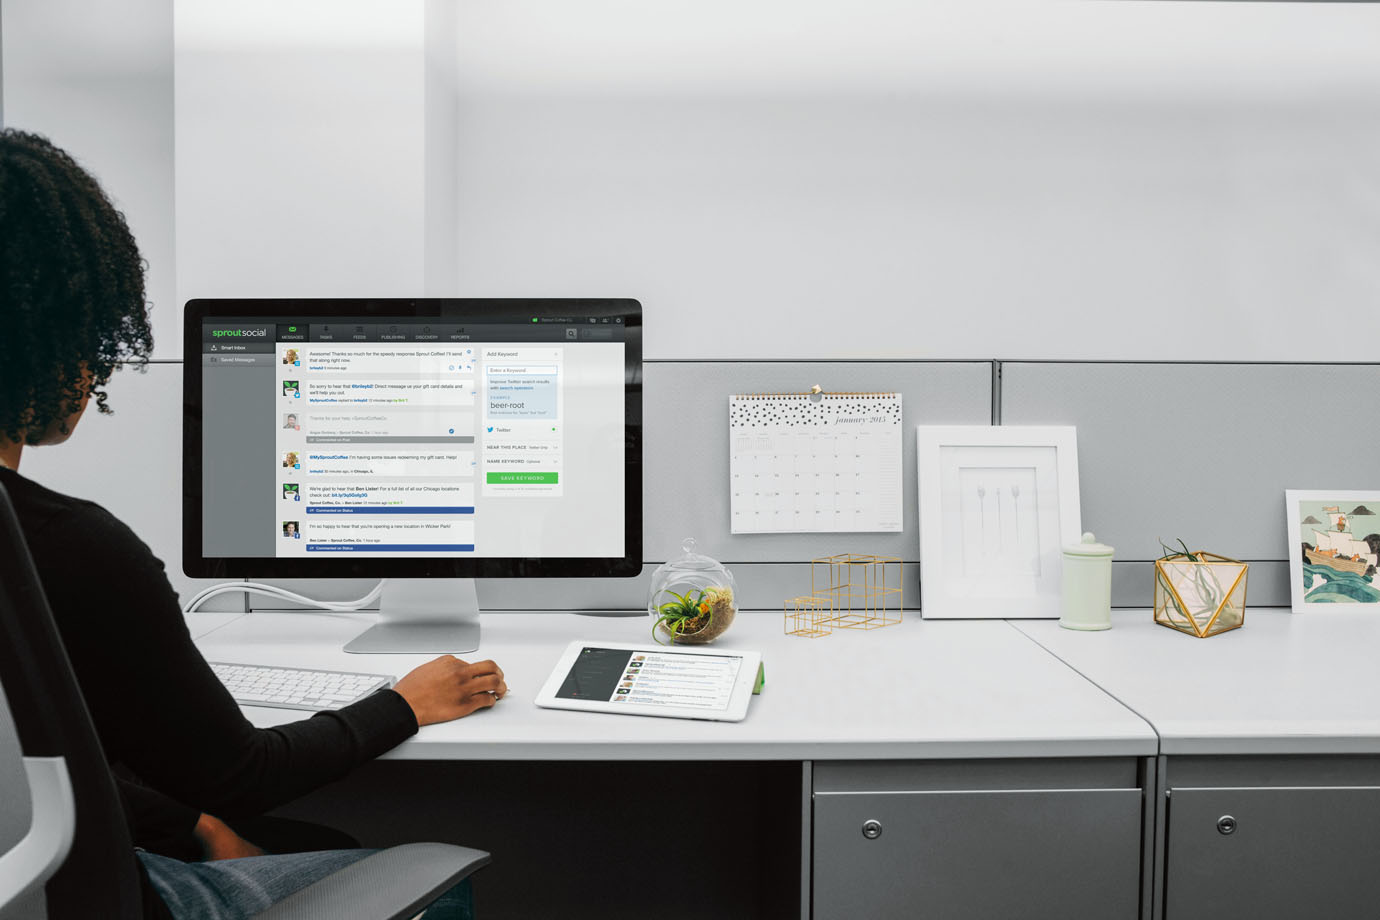 Someone using Sprout Social at their desk